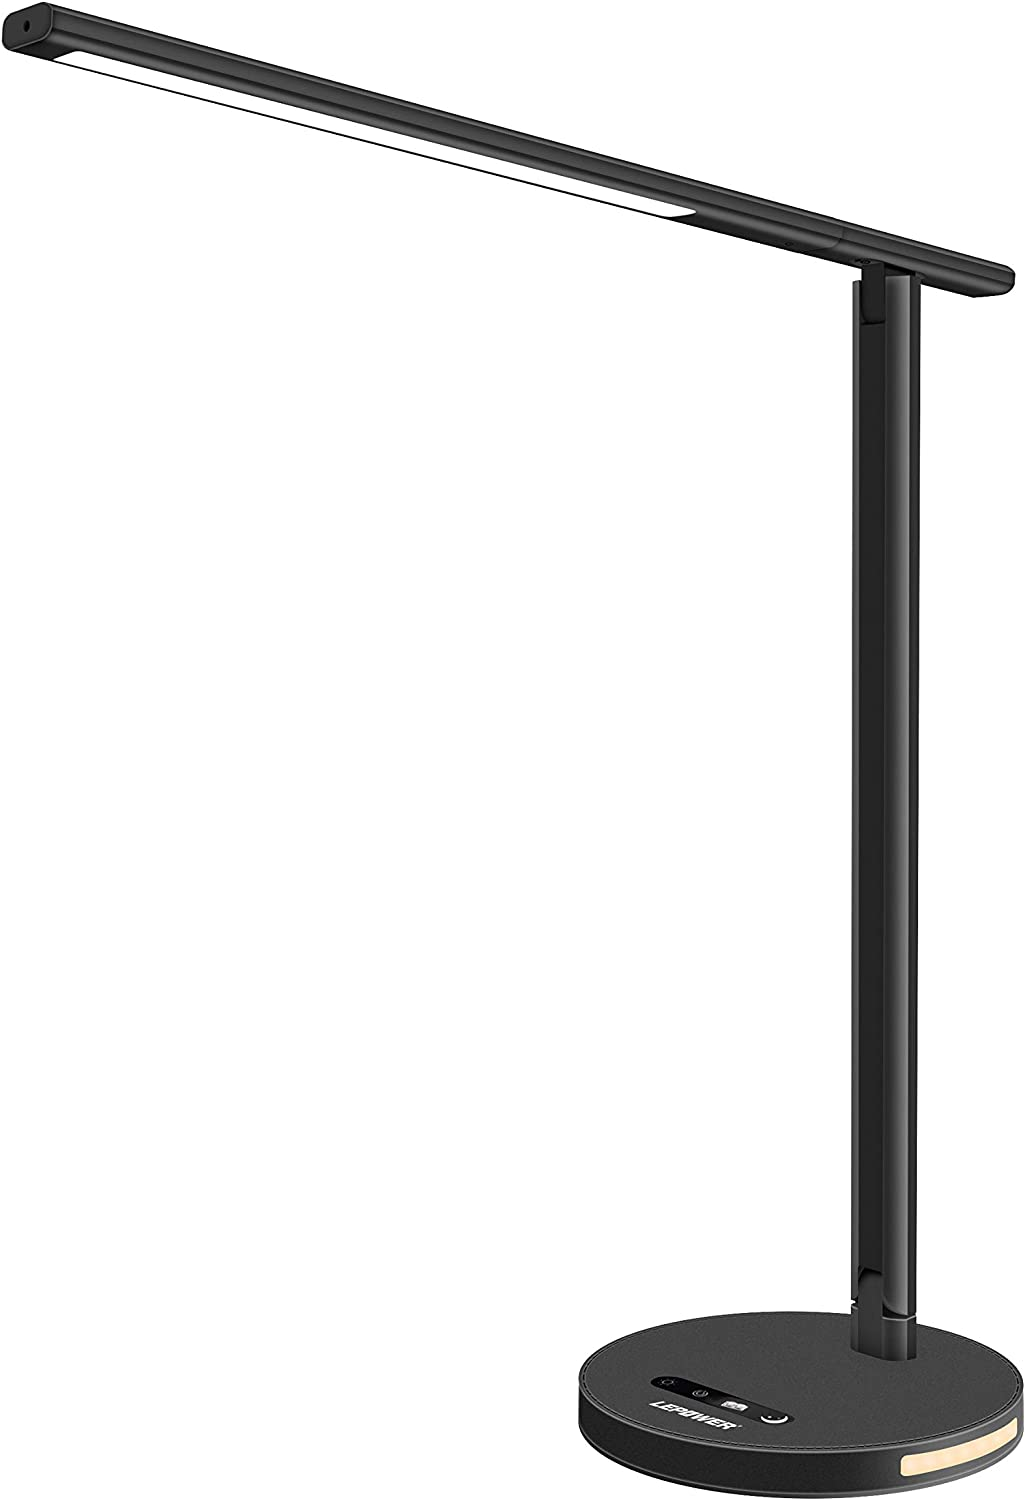 LEPOWER Metal Desk Lamp, Eye-Caring Touch Control LED Table Lamps, Dimmable Office Lamp, 3 Color Modes Stepless Brightness, Memory Function, Foldable Study Lamps with Night Light (8W) (Black)